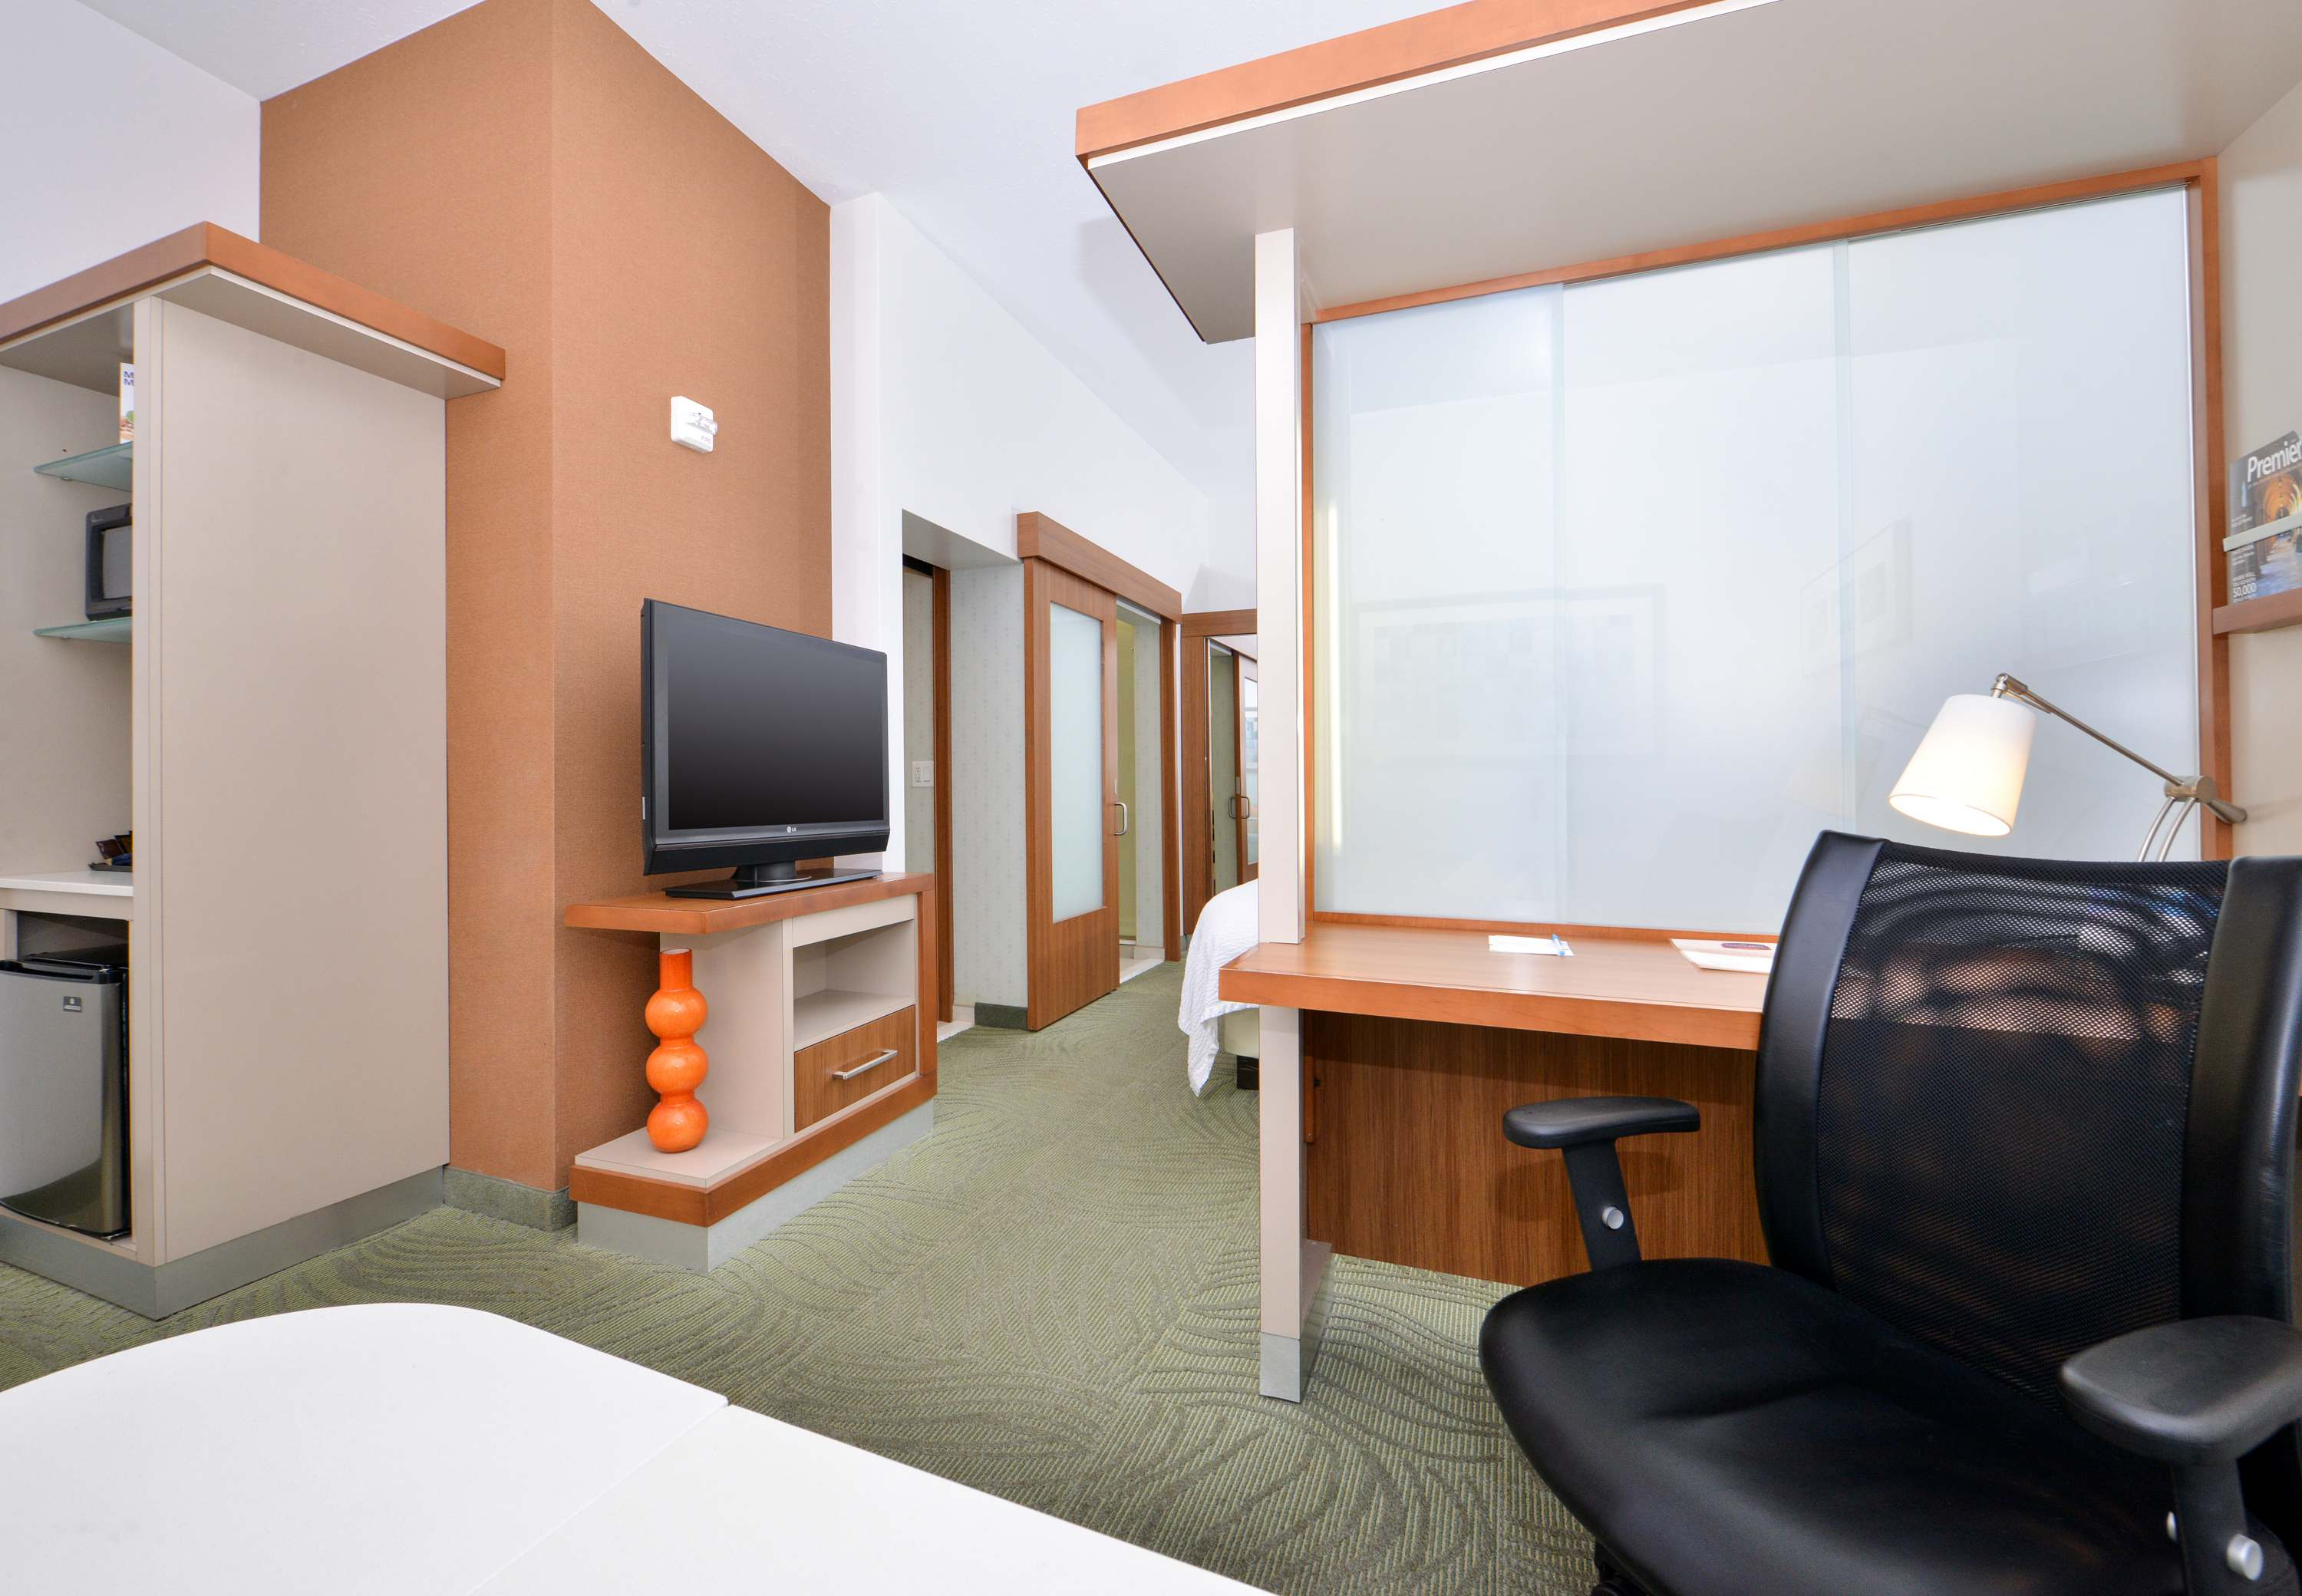 SpringHill Suites by Marriott Kingman Route 66 image 1